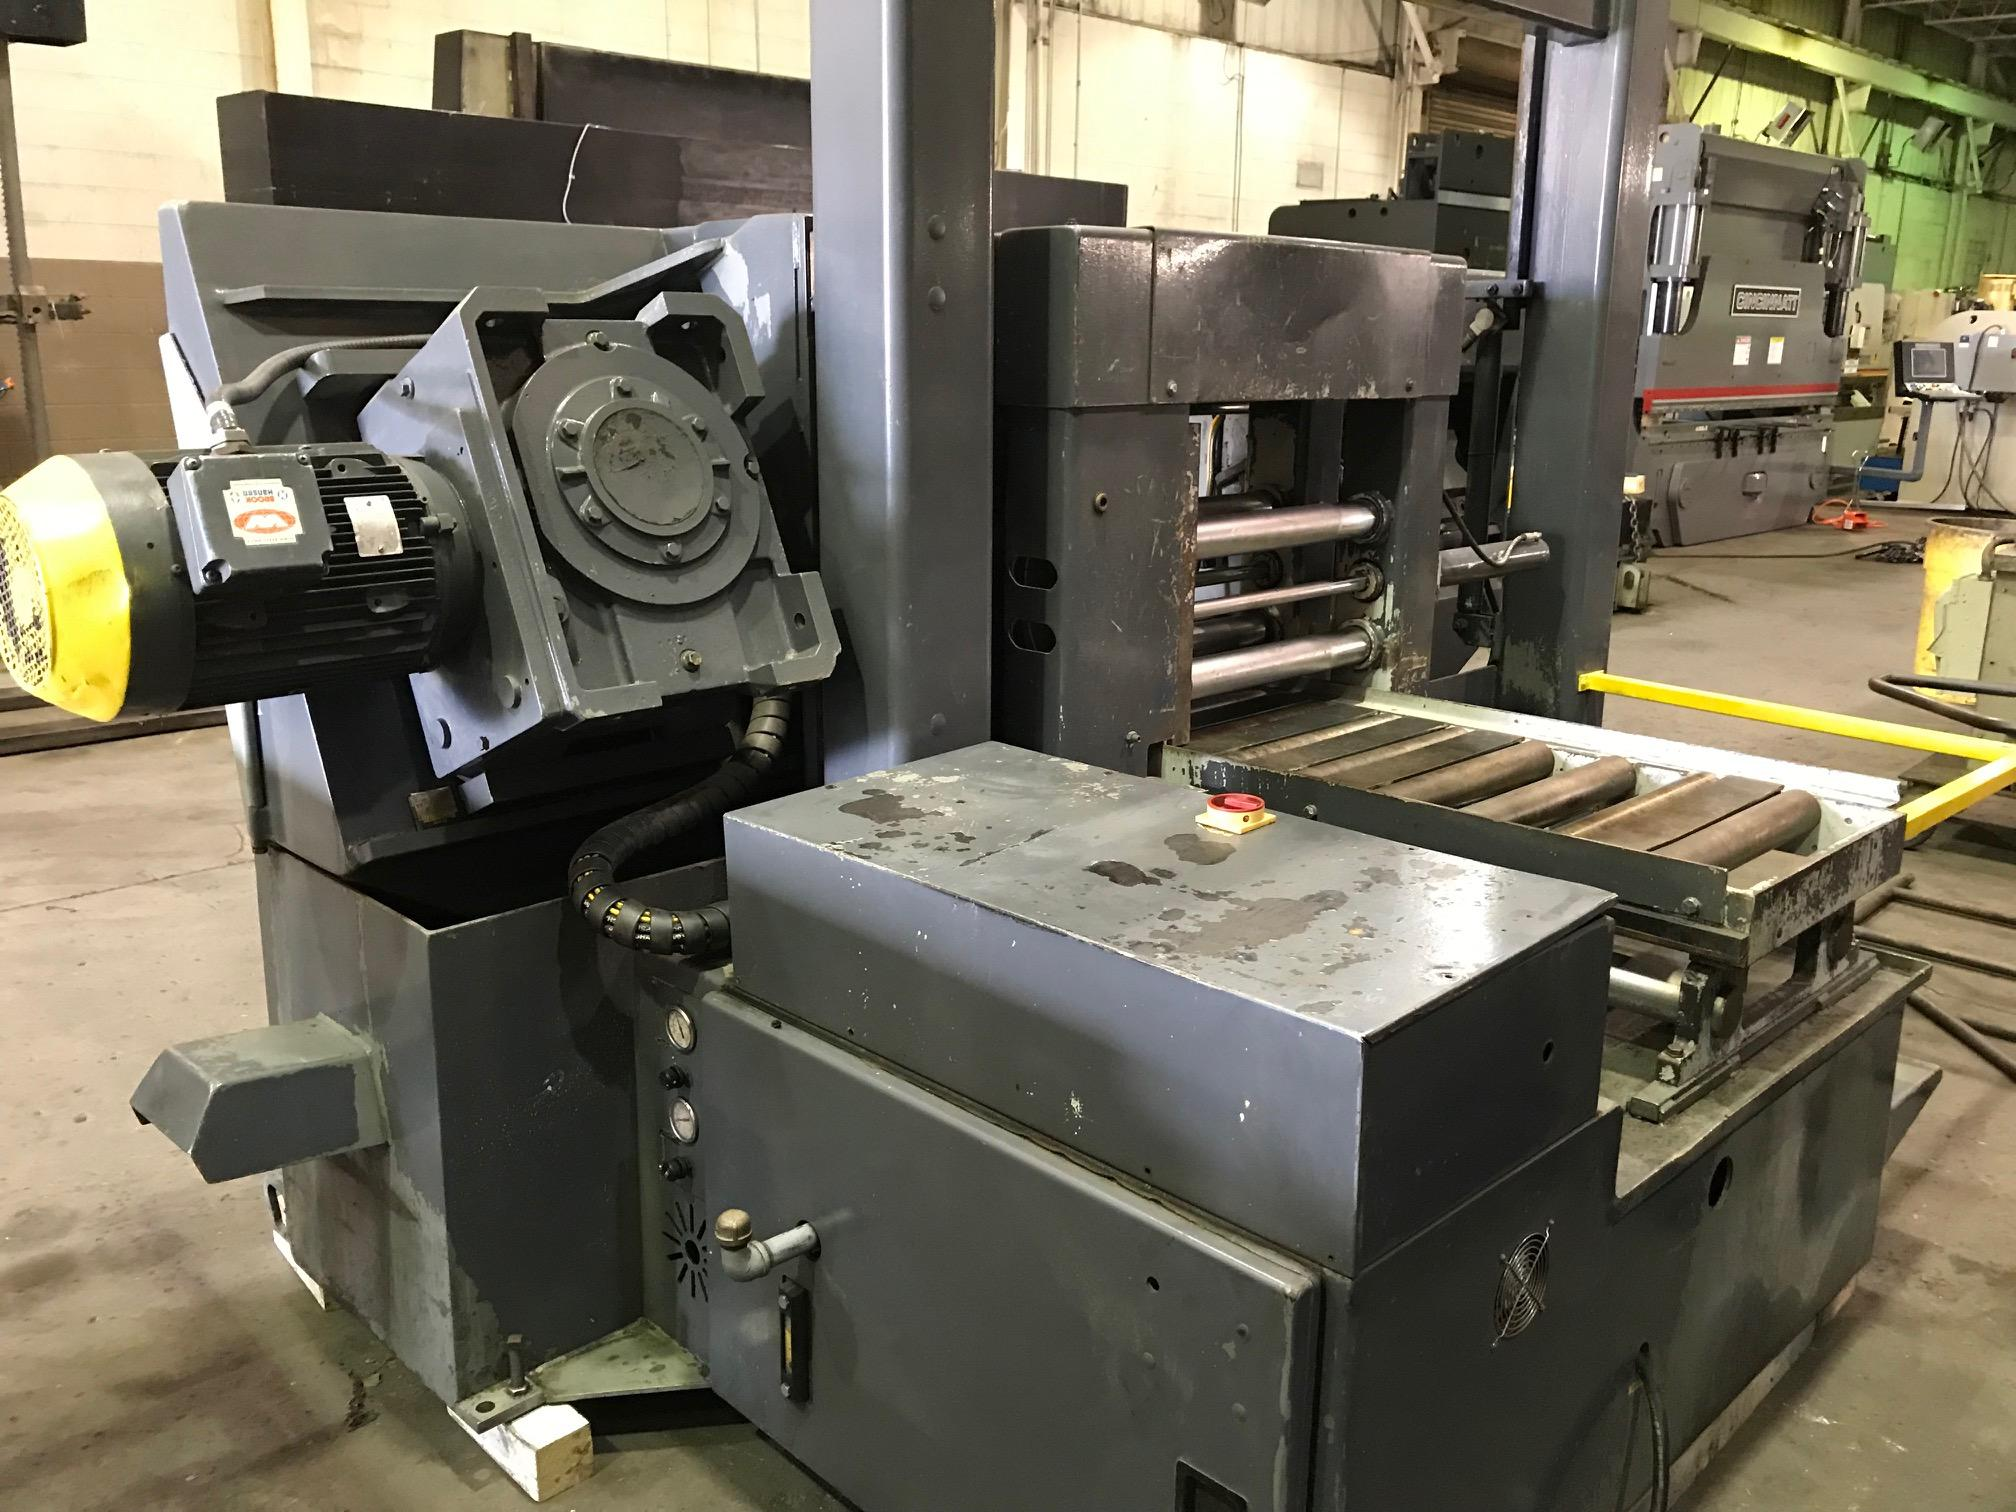 """USED HYD-MECH AUTOMATIC HORIZONTAL BANDSAW MODEL H-22A 22"""" X 22"""", STOCK# 10630, YEAR 2001"""